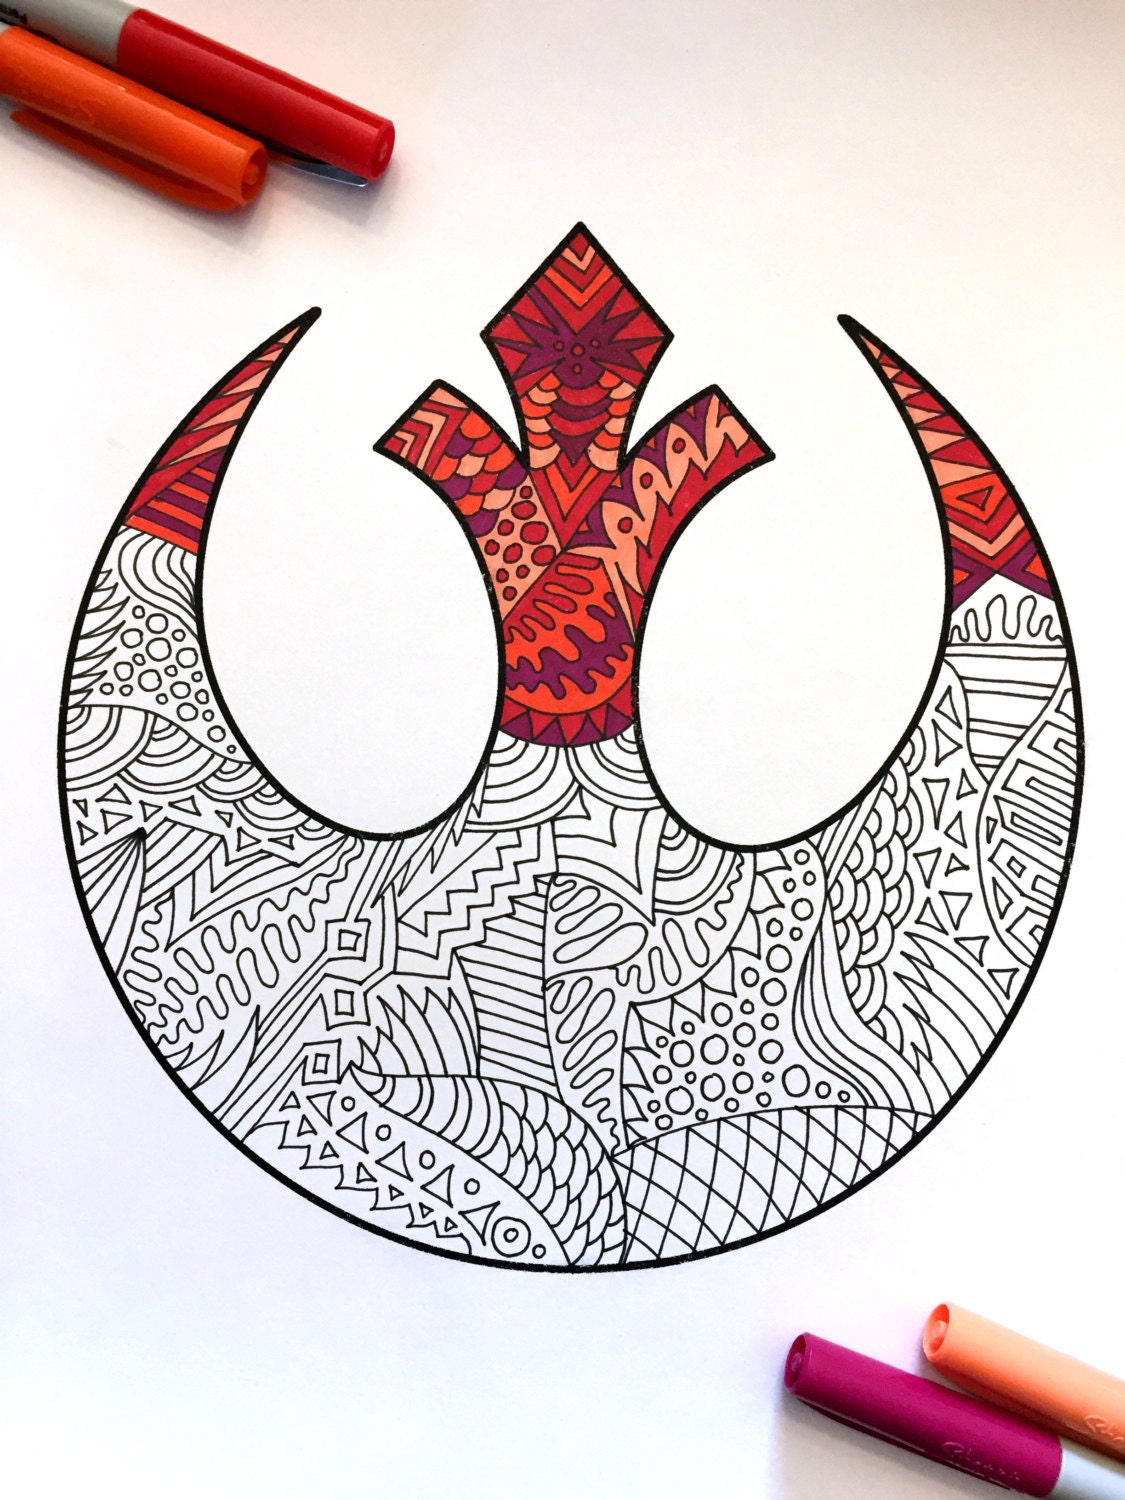 Alliance star wars symbol pdf zentangle coloring page zoom biocorpaavc Images